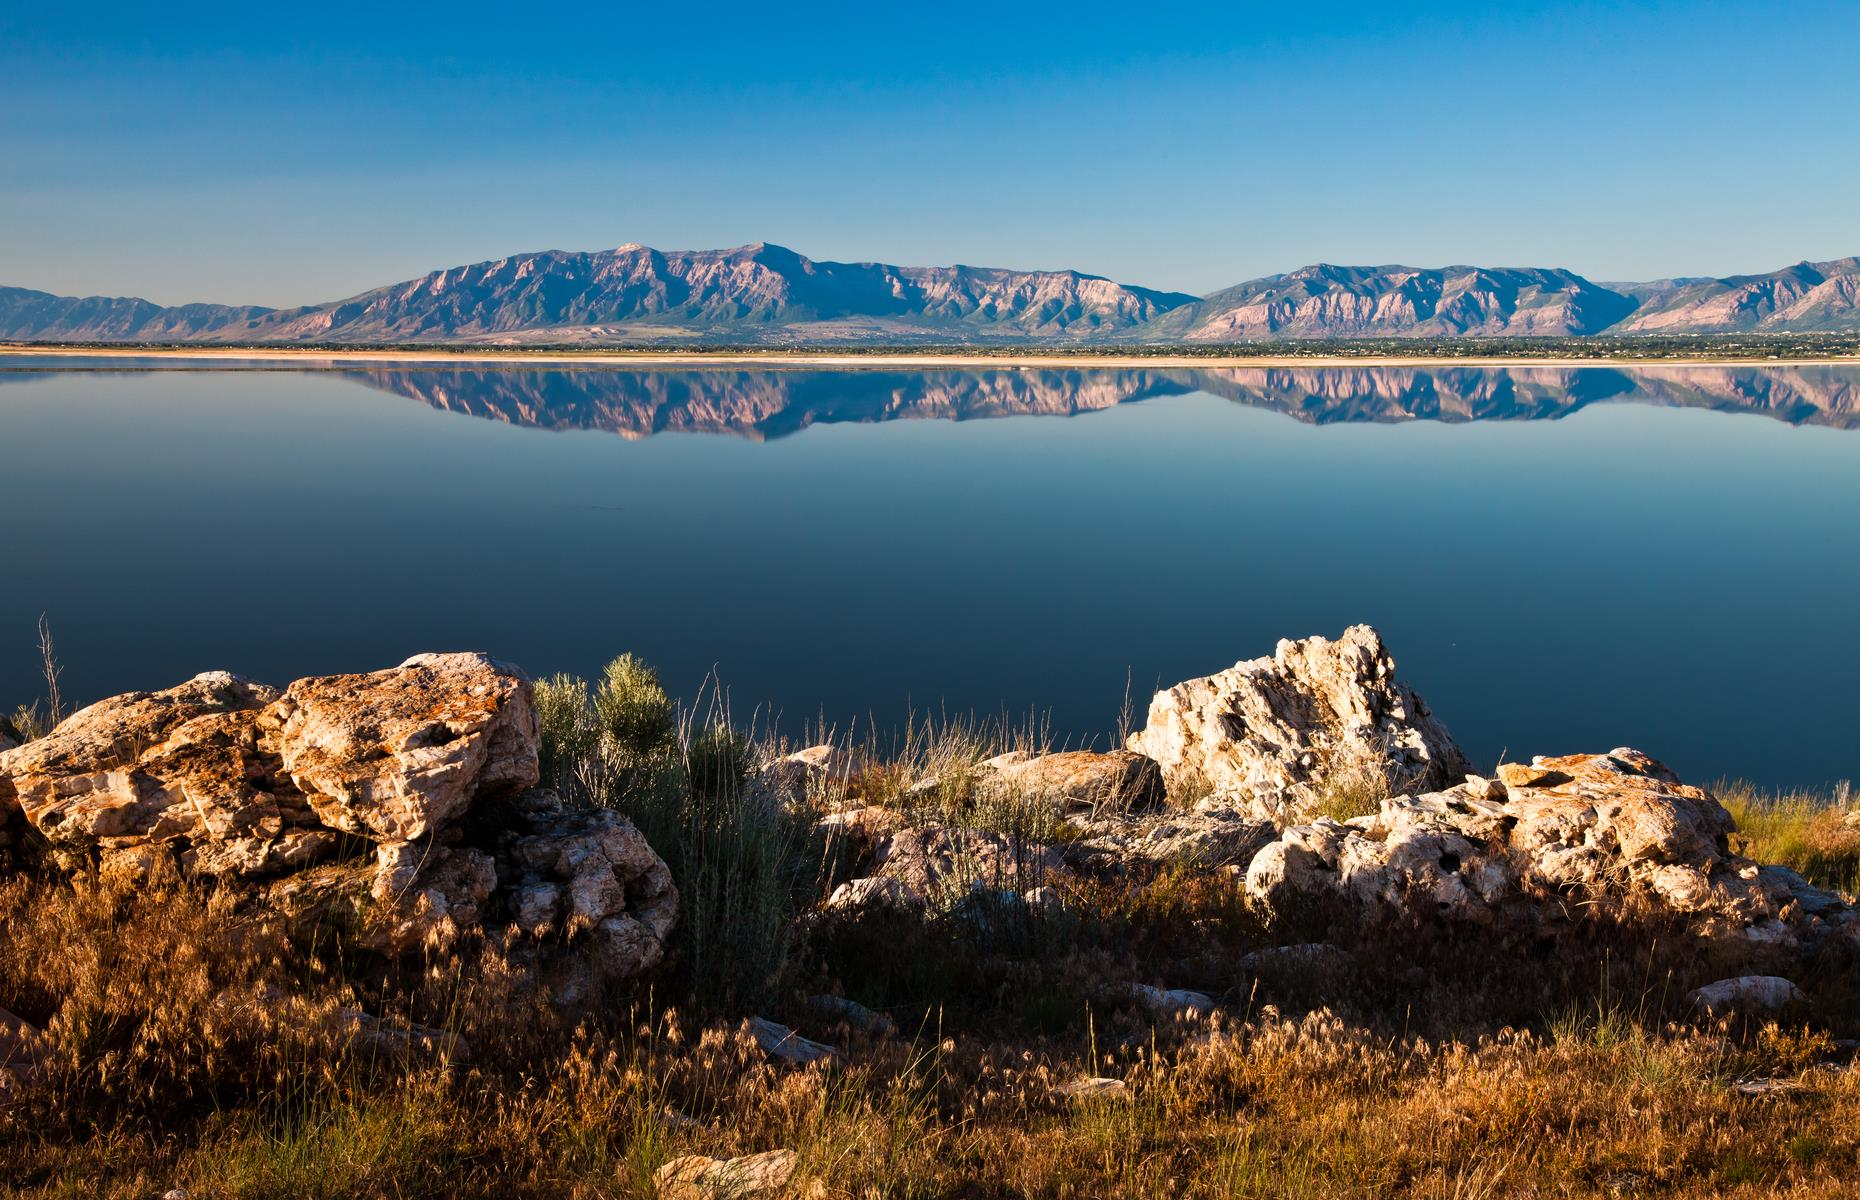 Slide 26 of 37: The Great Salt Lake in Utah has reportedly seen its volume drop by nearly half since the late 19th century. This is largely as a result of periods of drought and people diverting the water from the streams that flow into it.